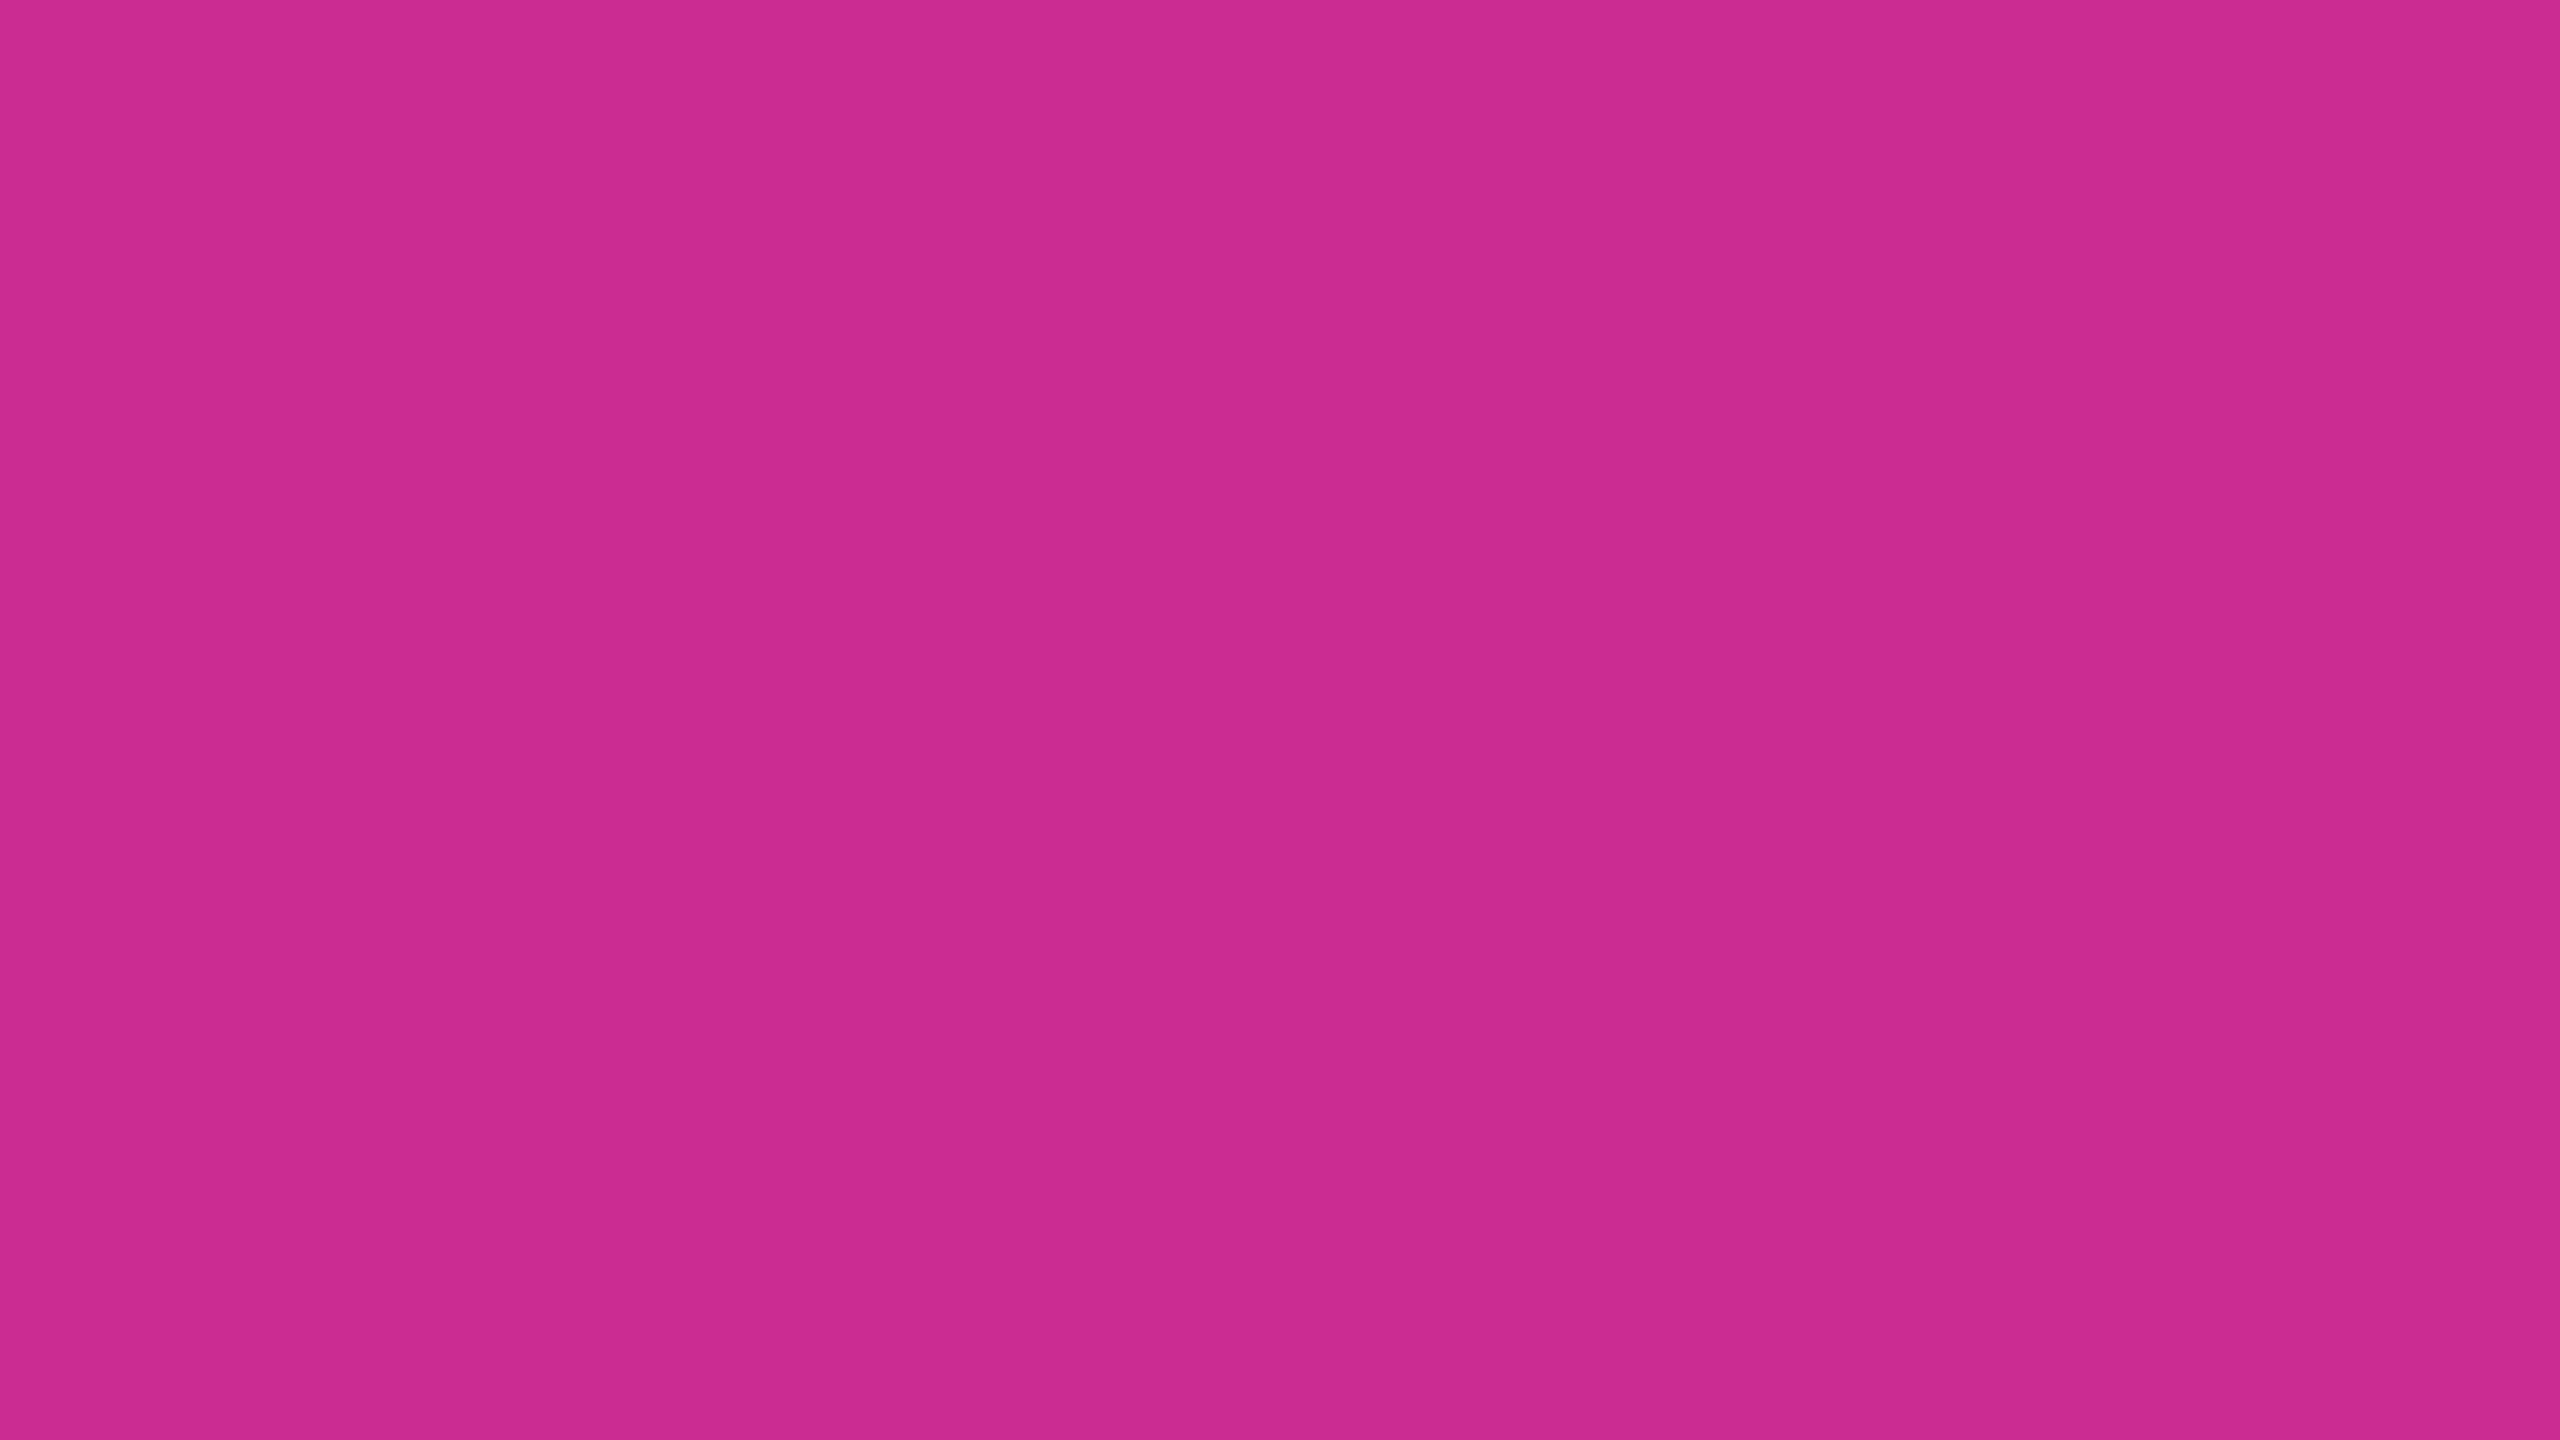 2560x1440 Royal Fuchsia Solid Color Background